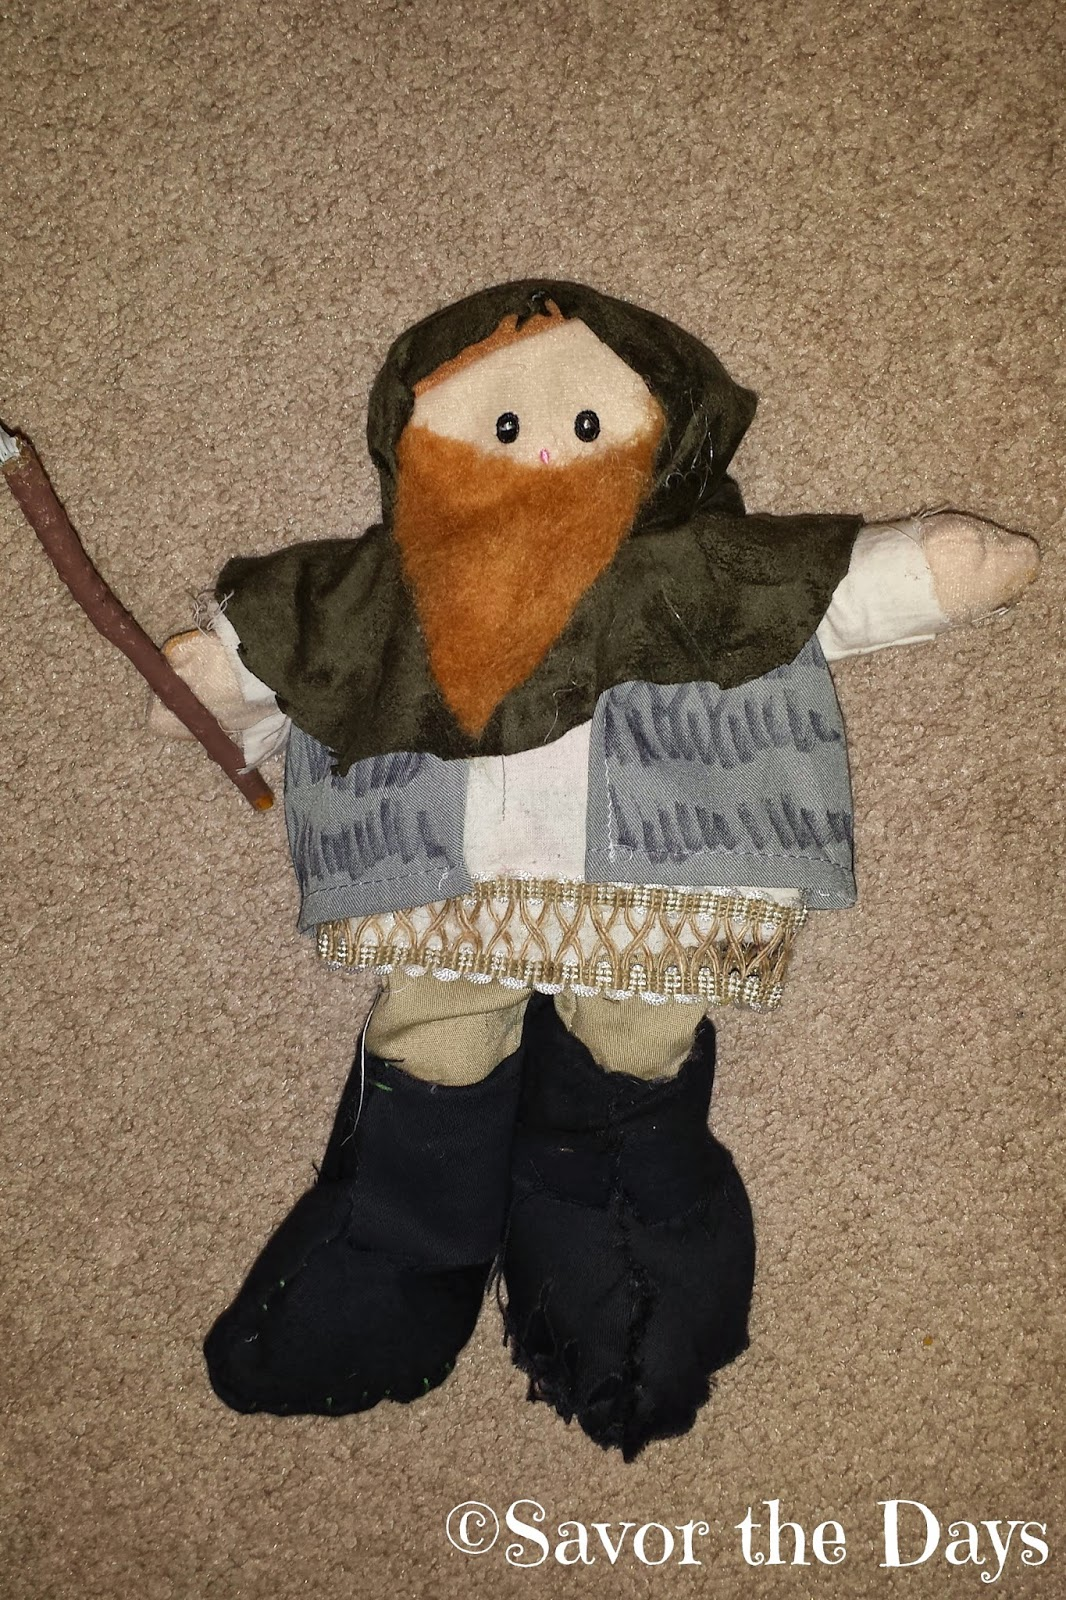 Dwarf doll from The Hobbit